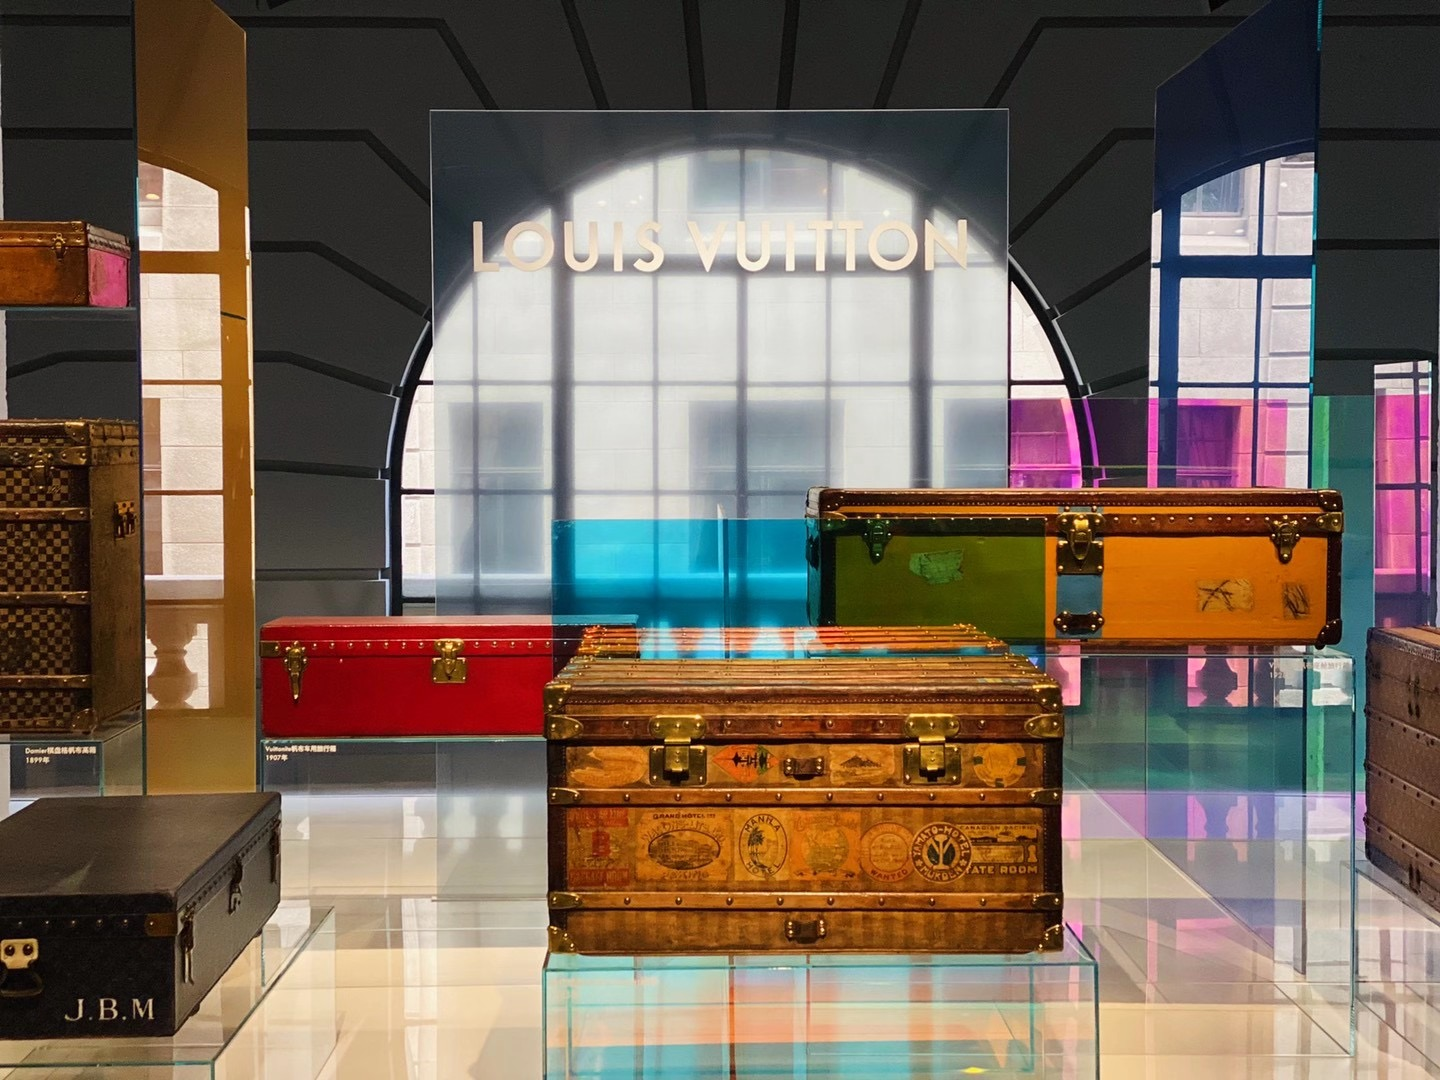 Louis Vuitton Objects Nomads and Hard-sided Event